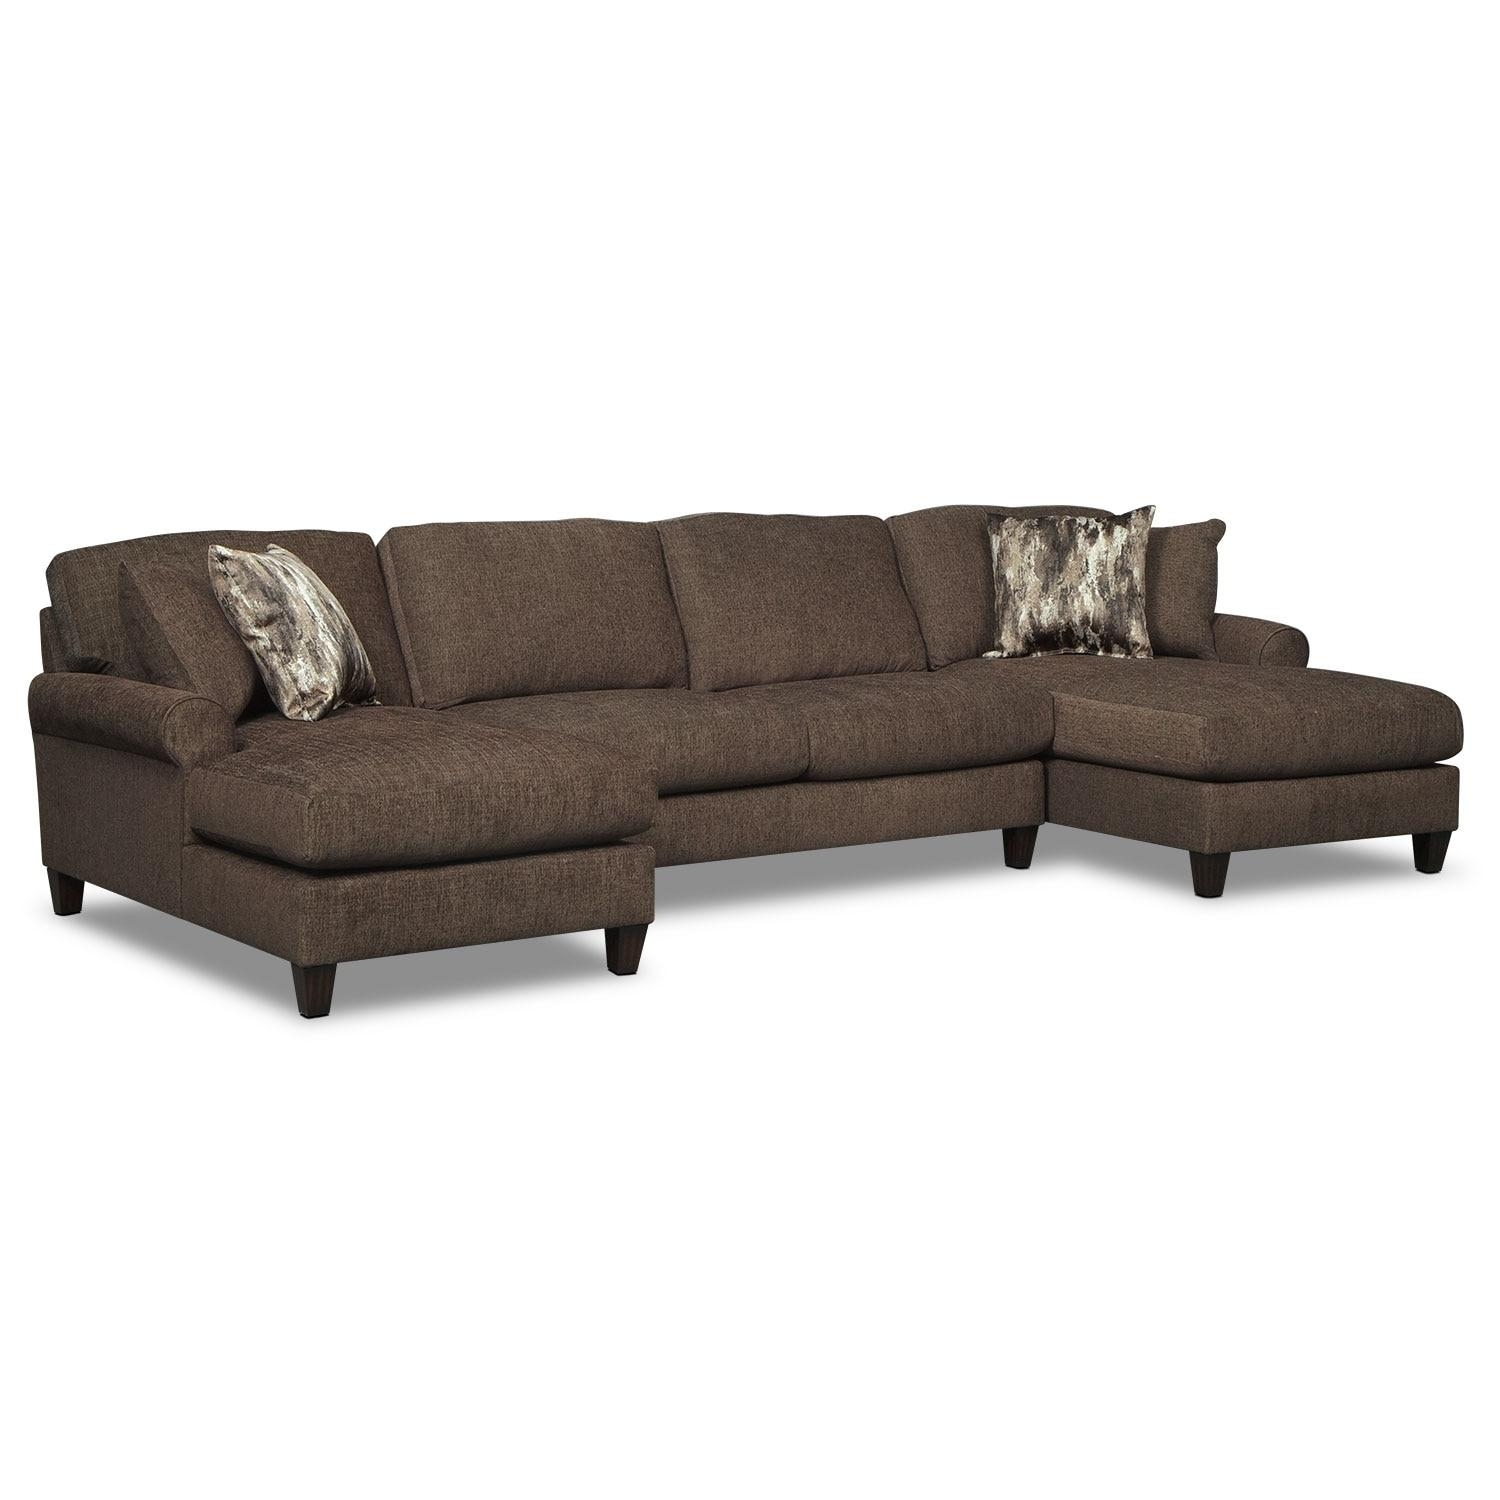 Karma 3 Piece Sectional With 2 Chaises – Smoke | Value City Furniture Inside Sectional With 2 Chaises (Image 7 of 20)